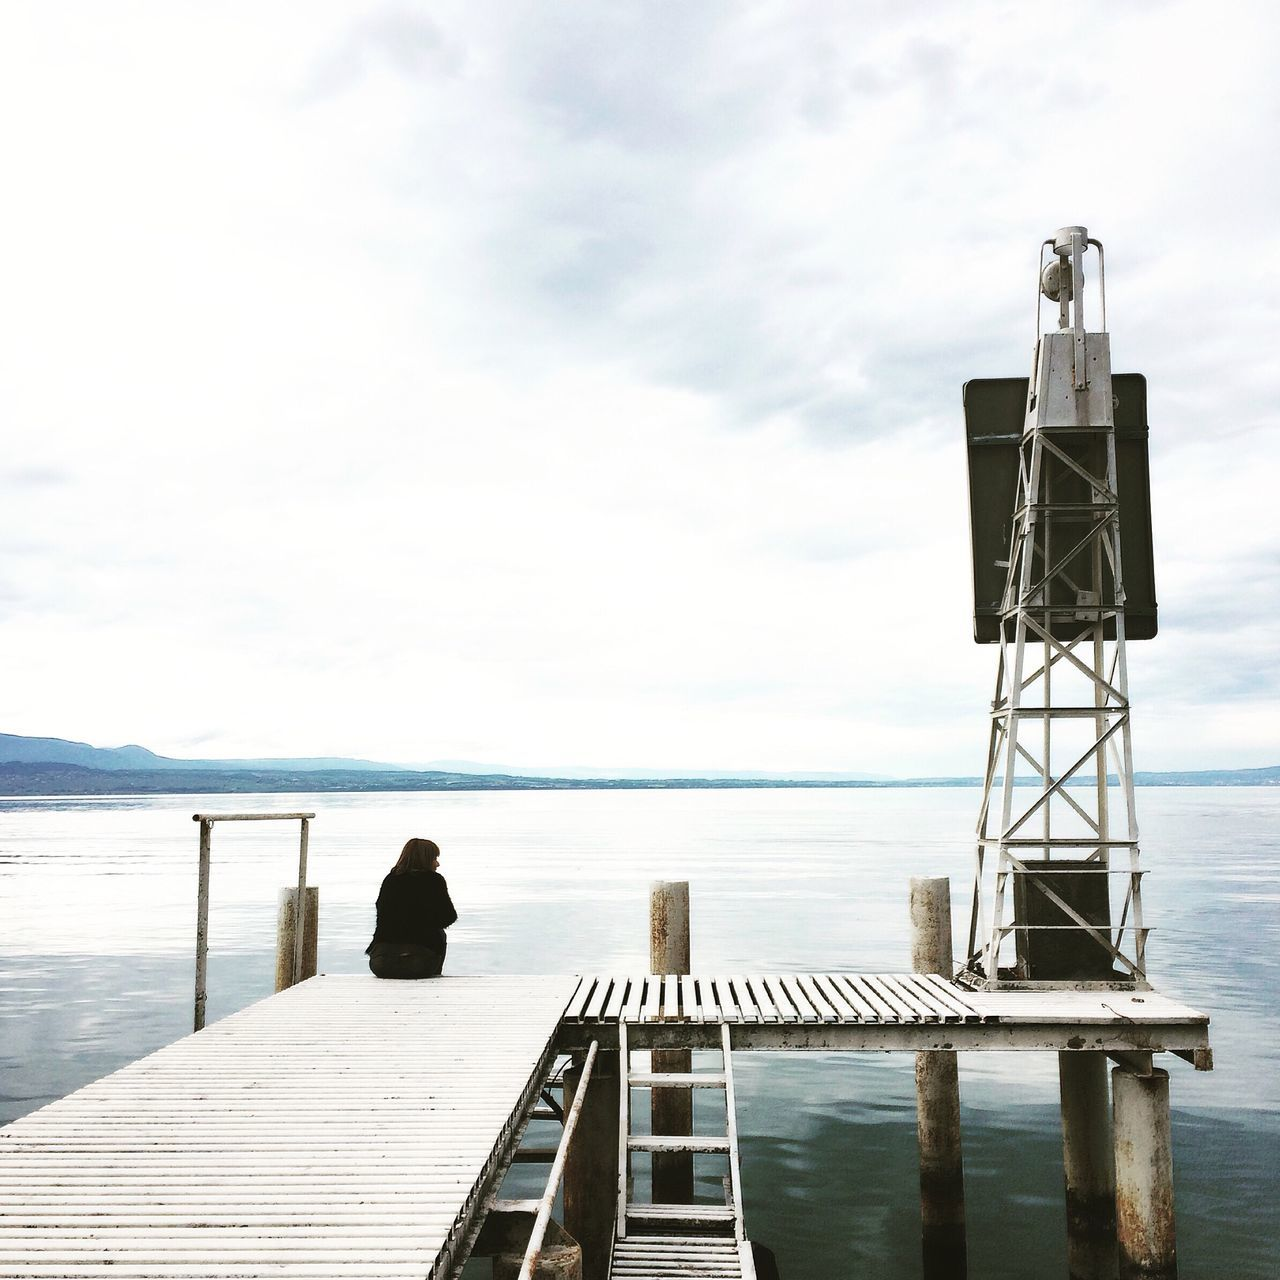 Minimal - Water Sea Sky Cloud - Sky Railing Day Nature Horizon Over Water Tranquility Outdoors Tranquil Scene Beauty In Nature One Person Built Structure Jetty Full Length Men Scenics Diving Platform One Man Only